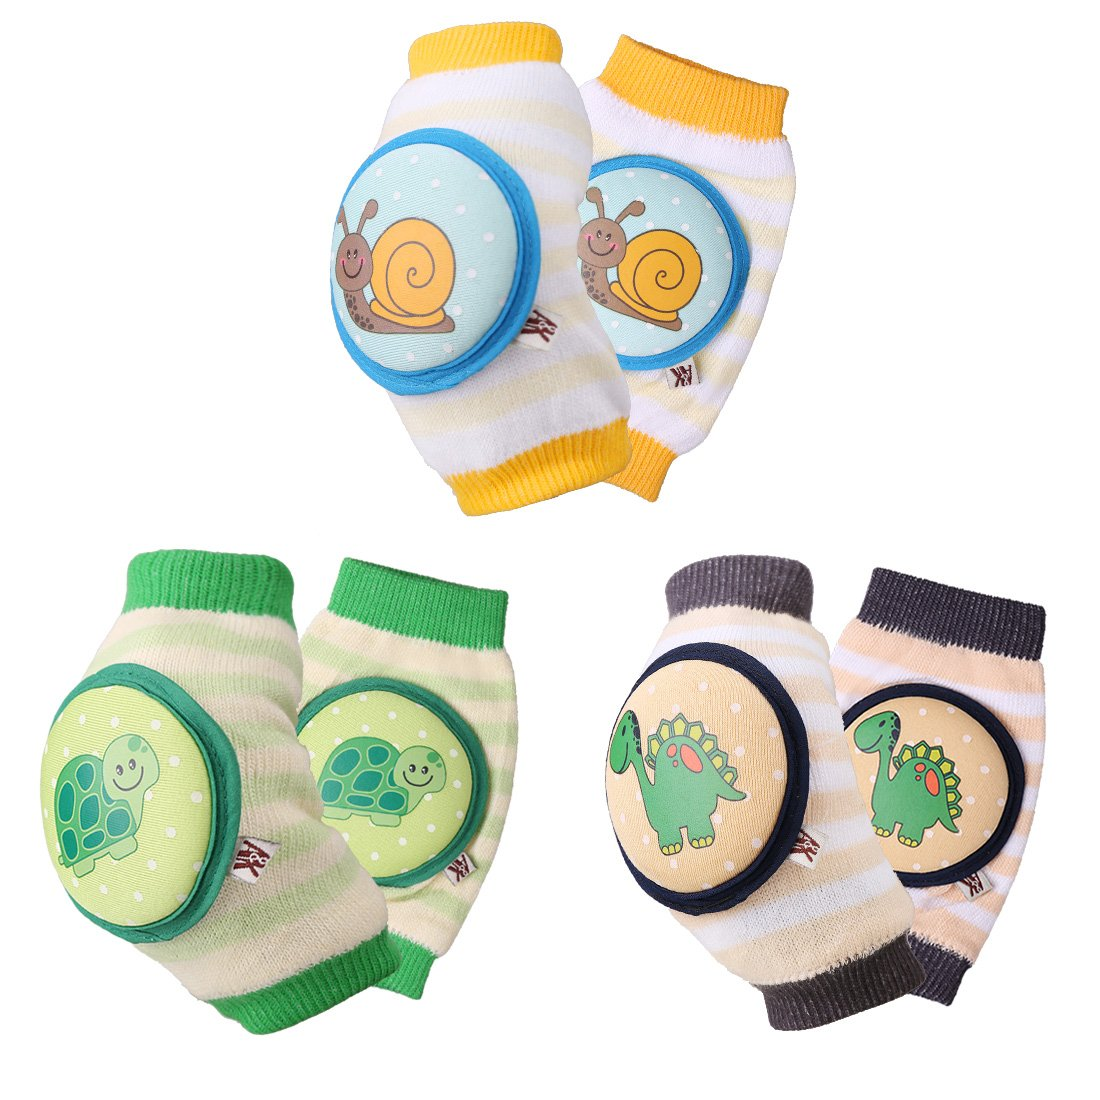 Top 9 Best Baby Knee Pads for Crawling Reviews in 2021 11